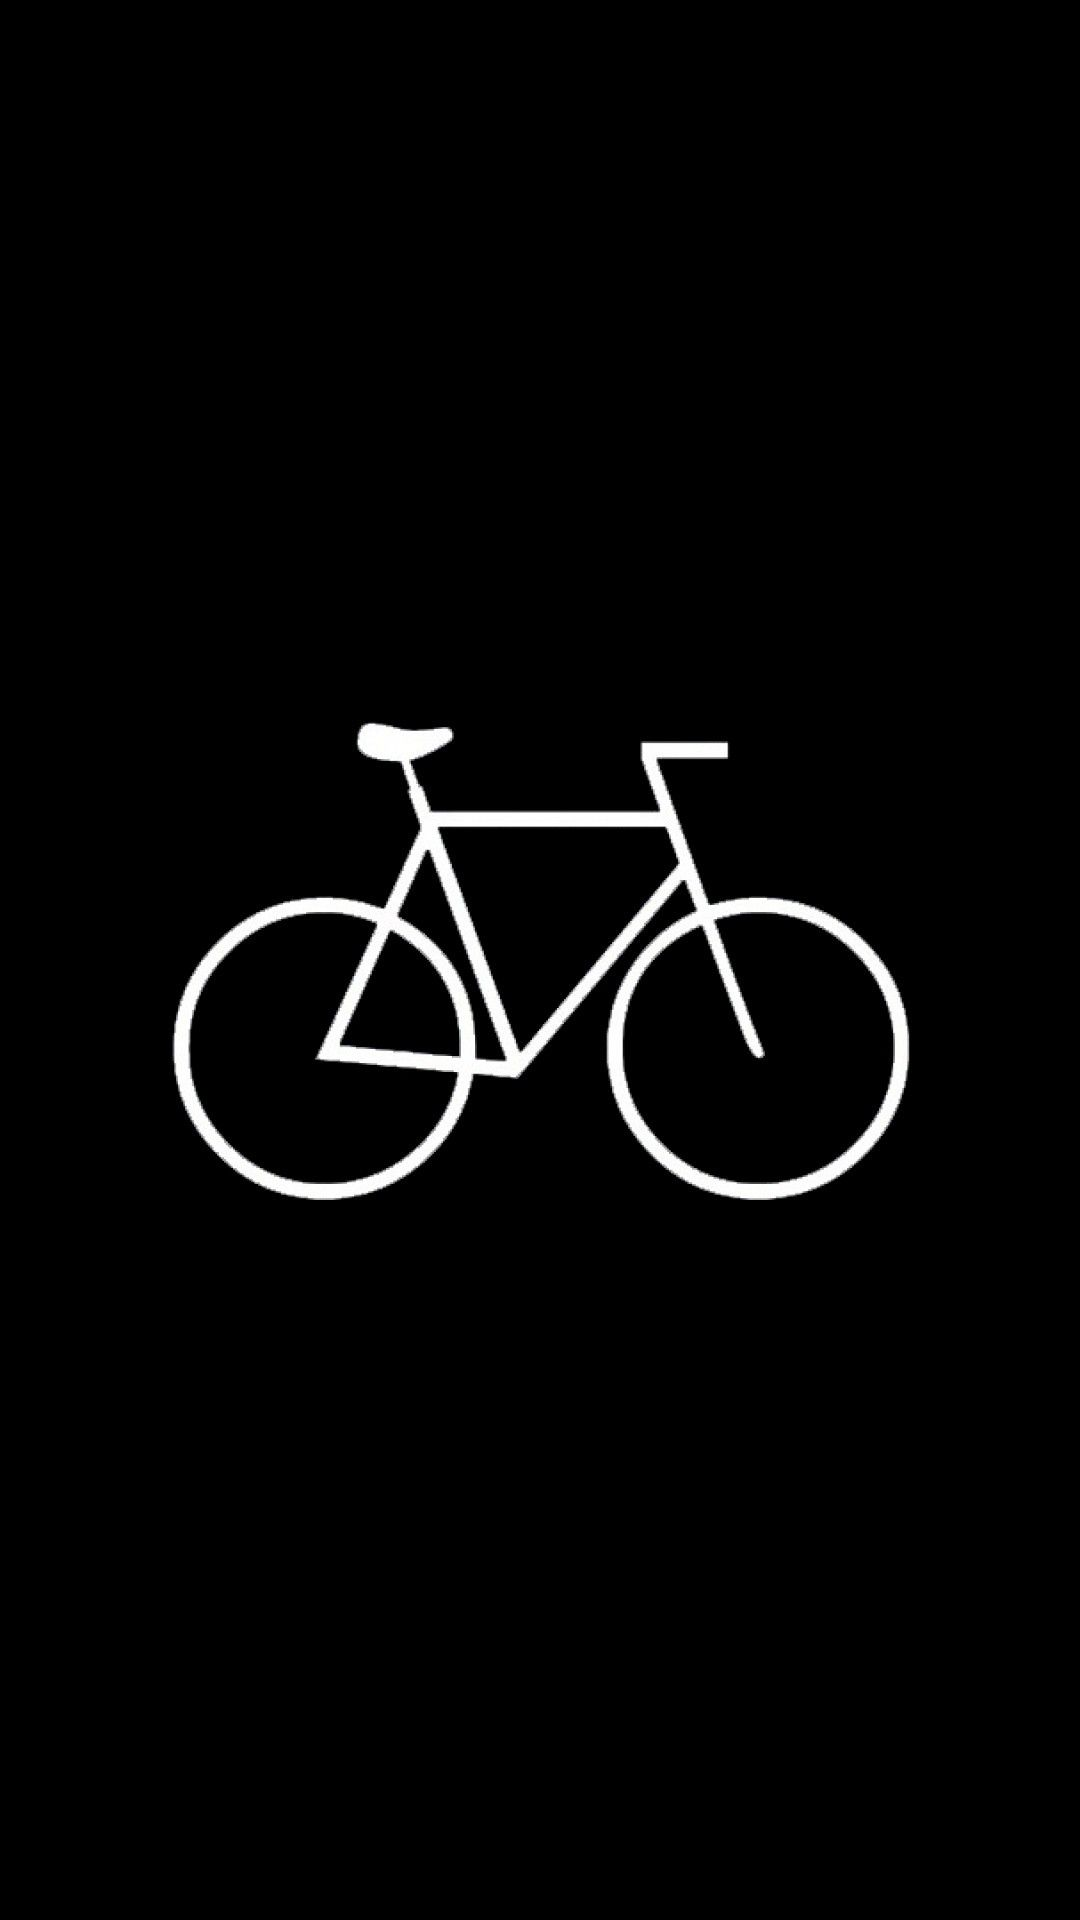 Cars Bikes Iphone 6 Plus Wallpapers Flat Simple Bicycle